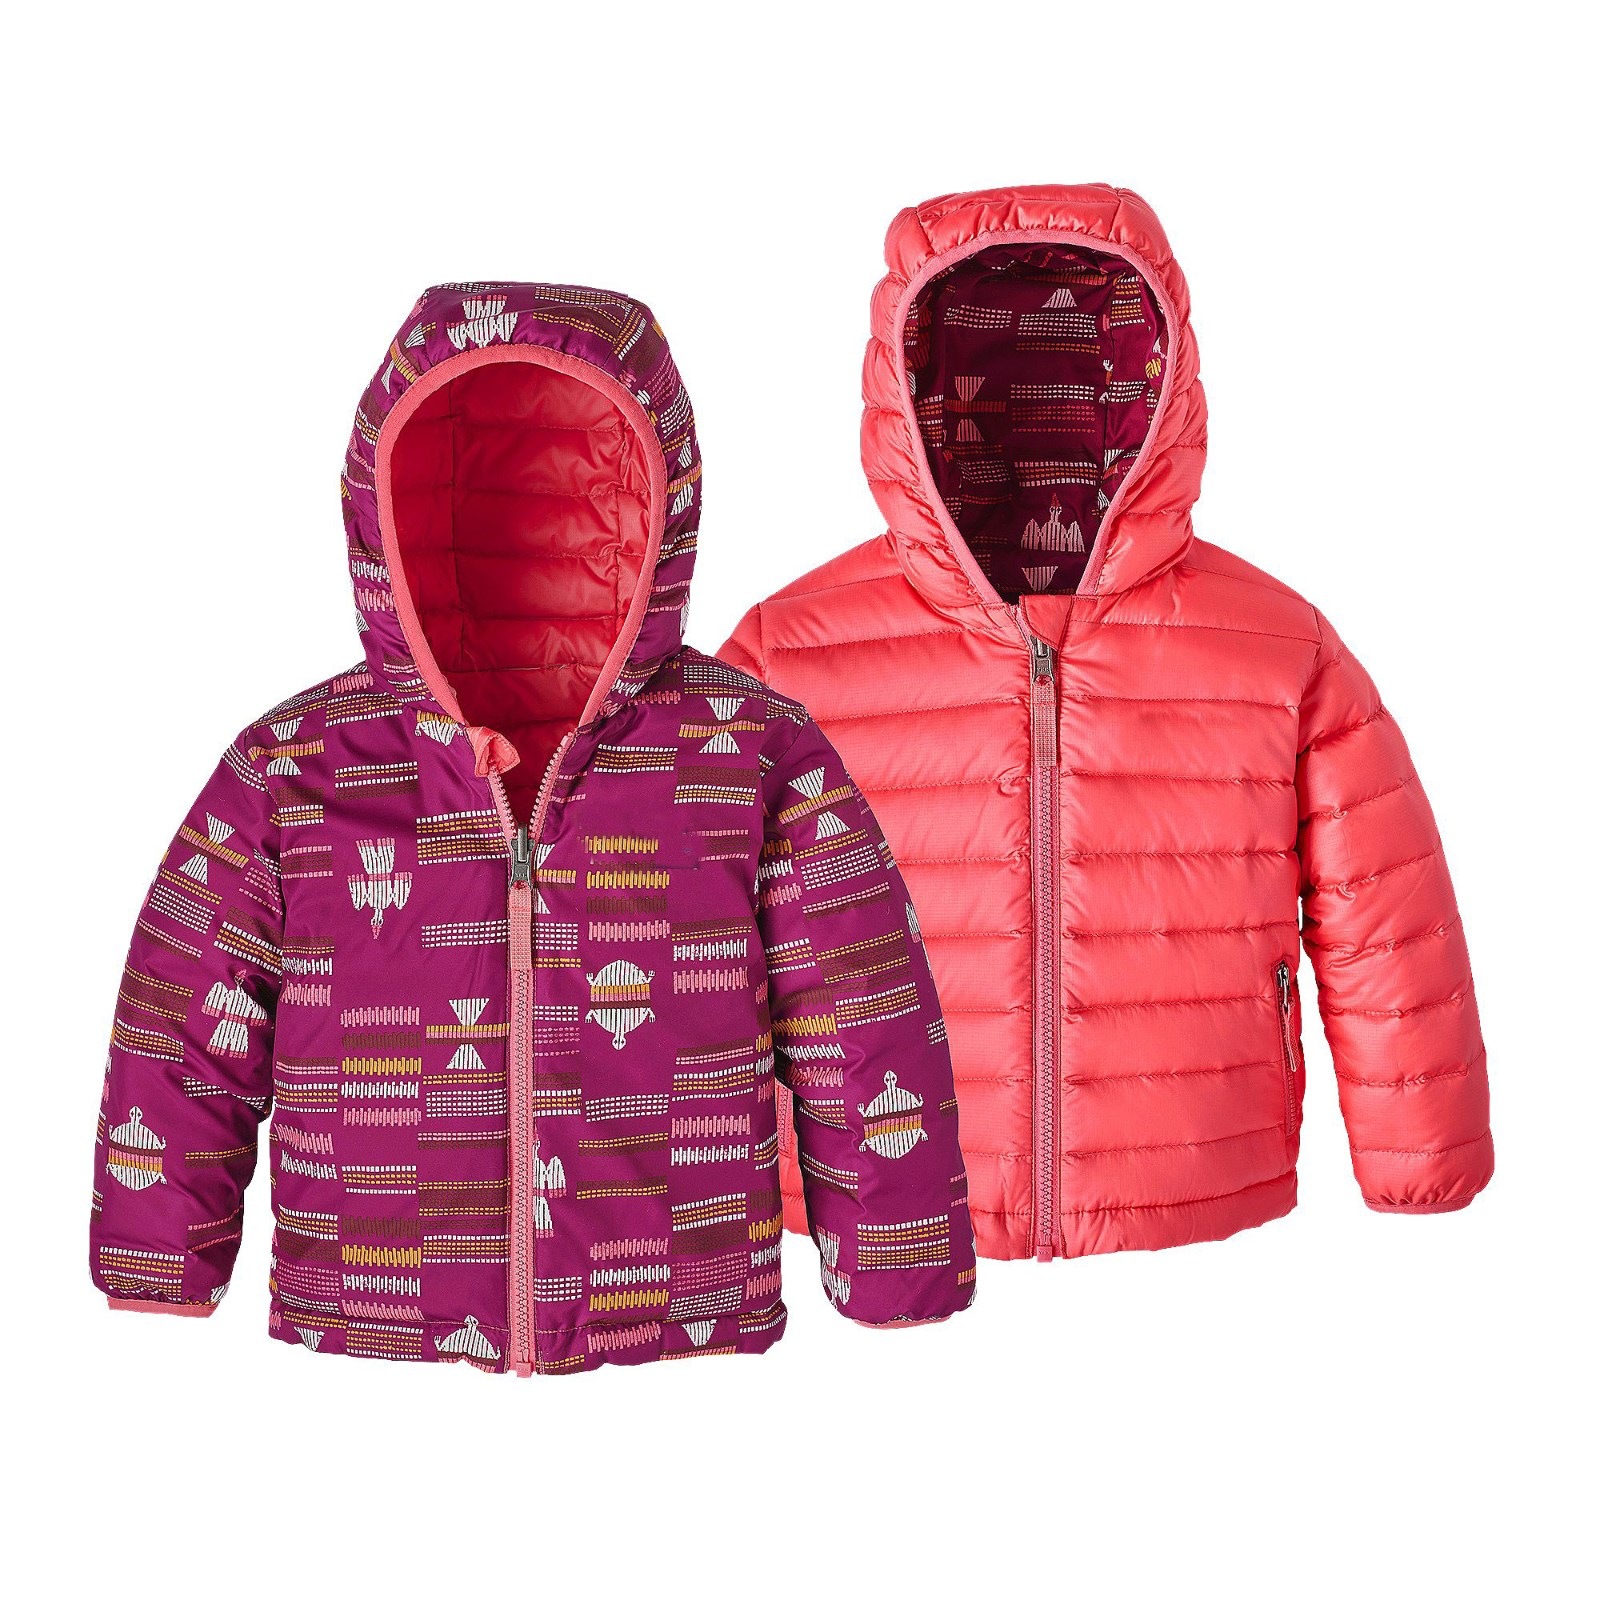 Baby Reversible Down Jacket Hoody Manufacturers, Baby Reversible Down Jacket Hoody Factory, Supply Baby Reversible Down Jacket Hoody